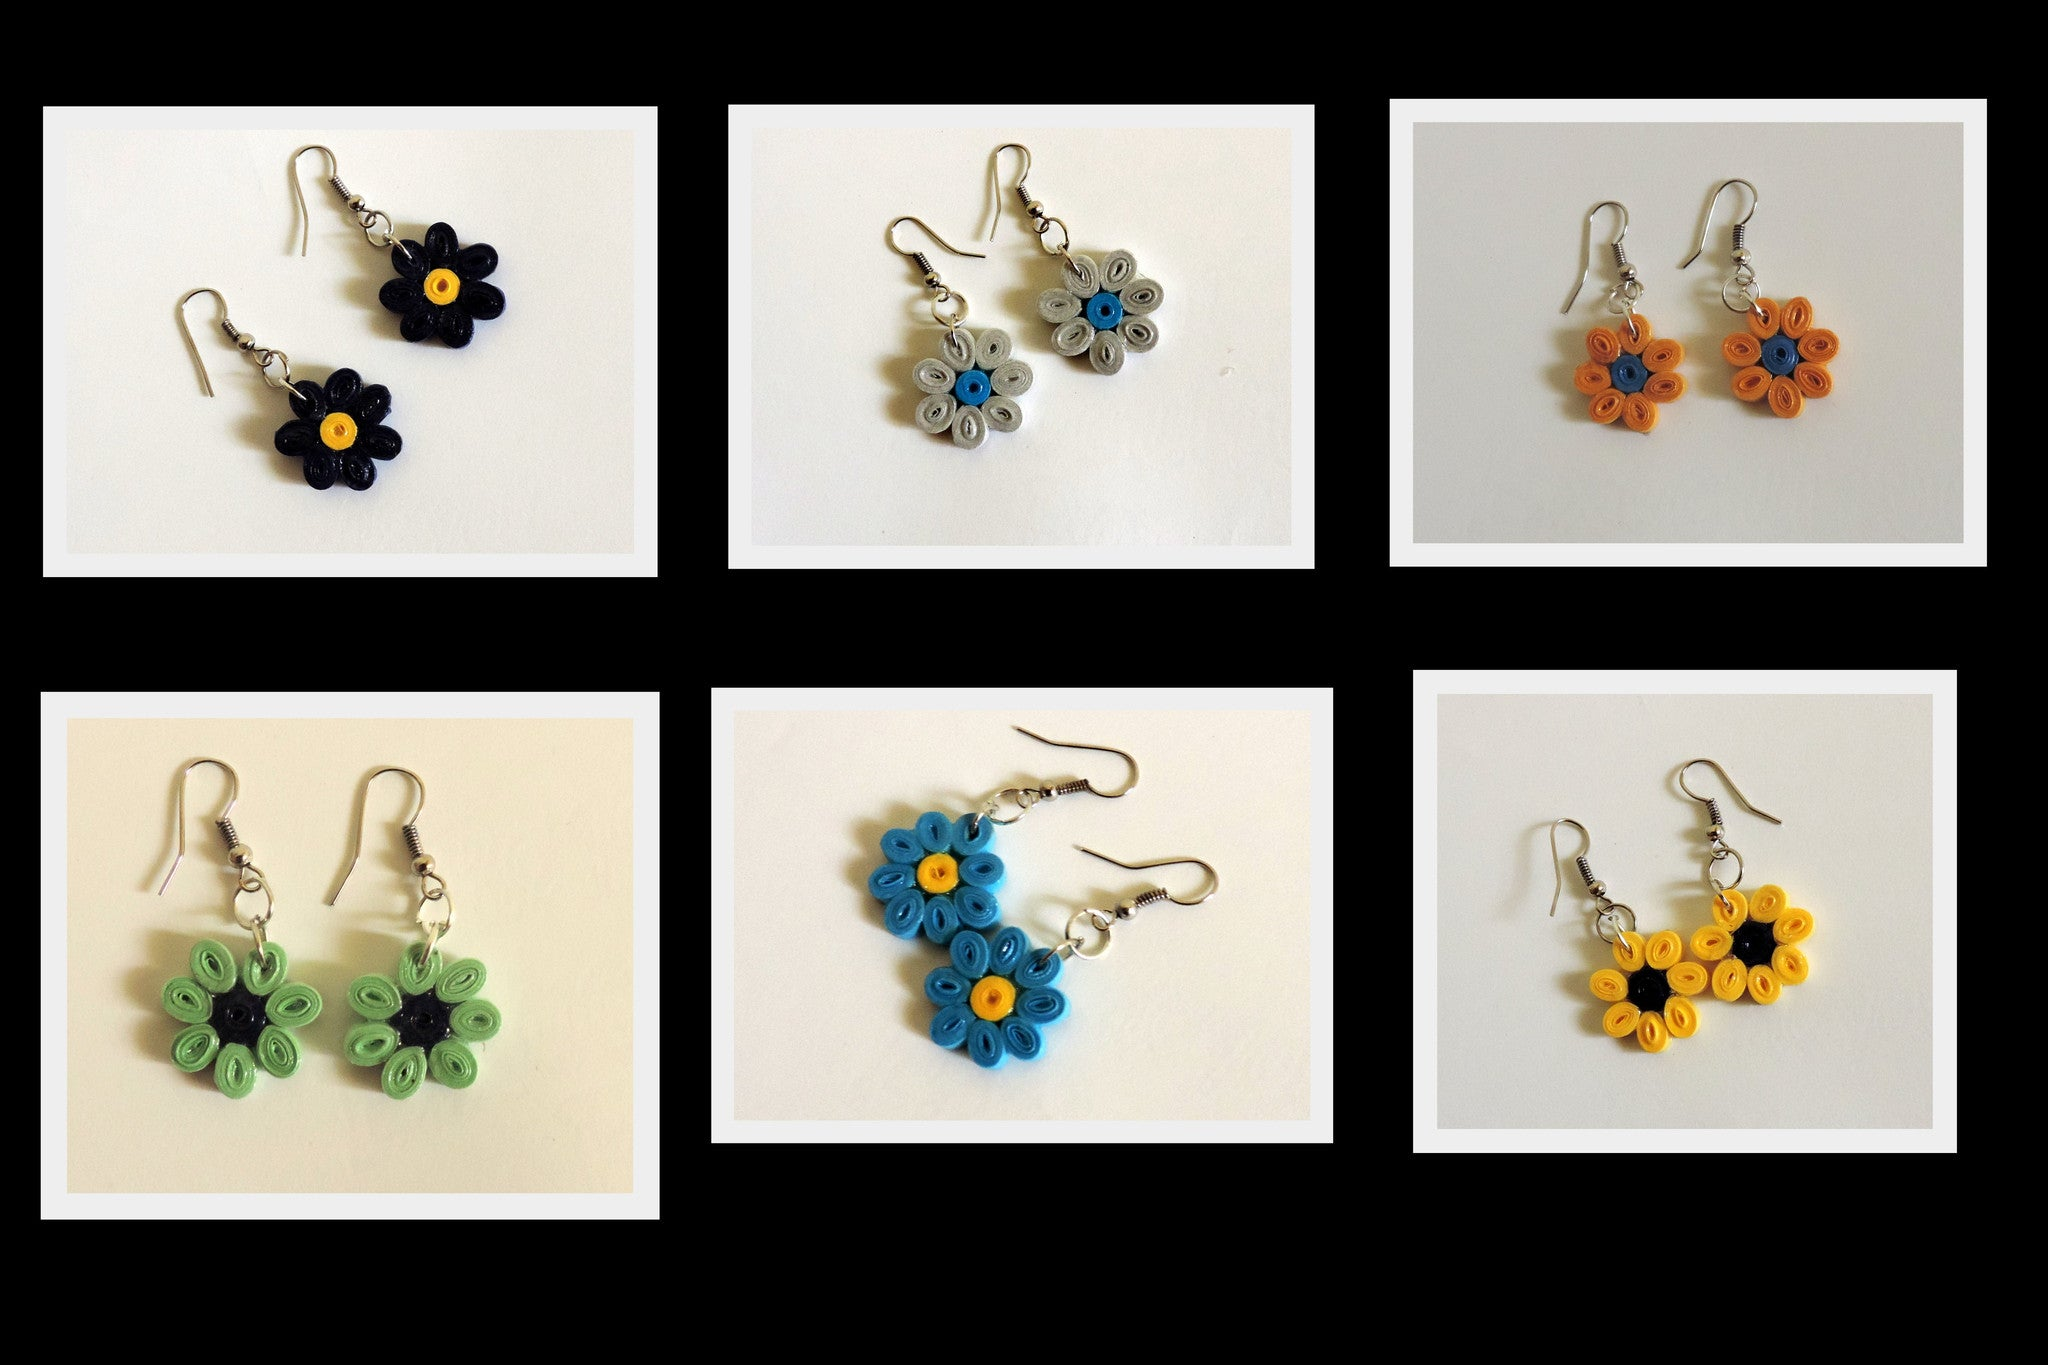 6 Flower earrings combo - Khushi Handmade Jewellery